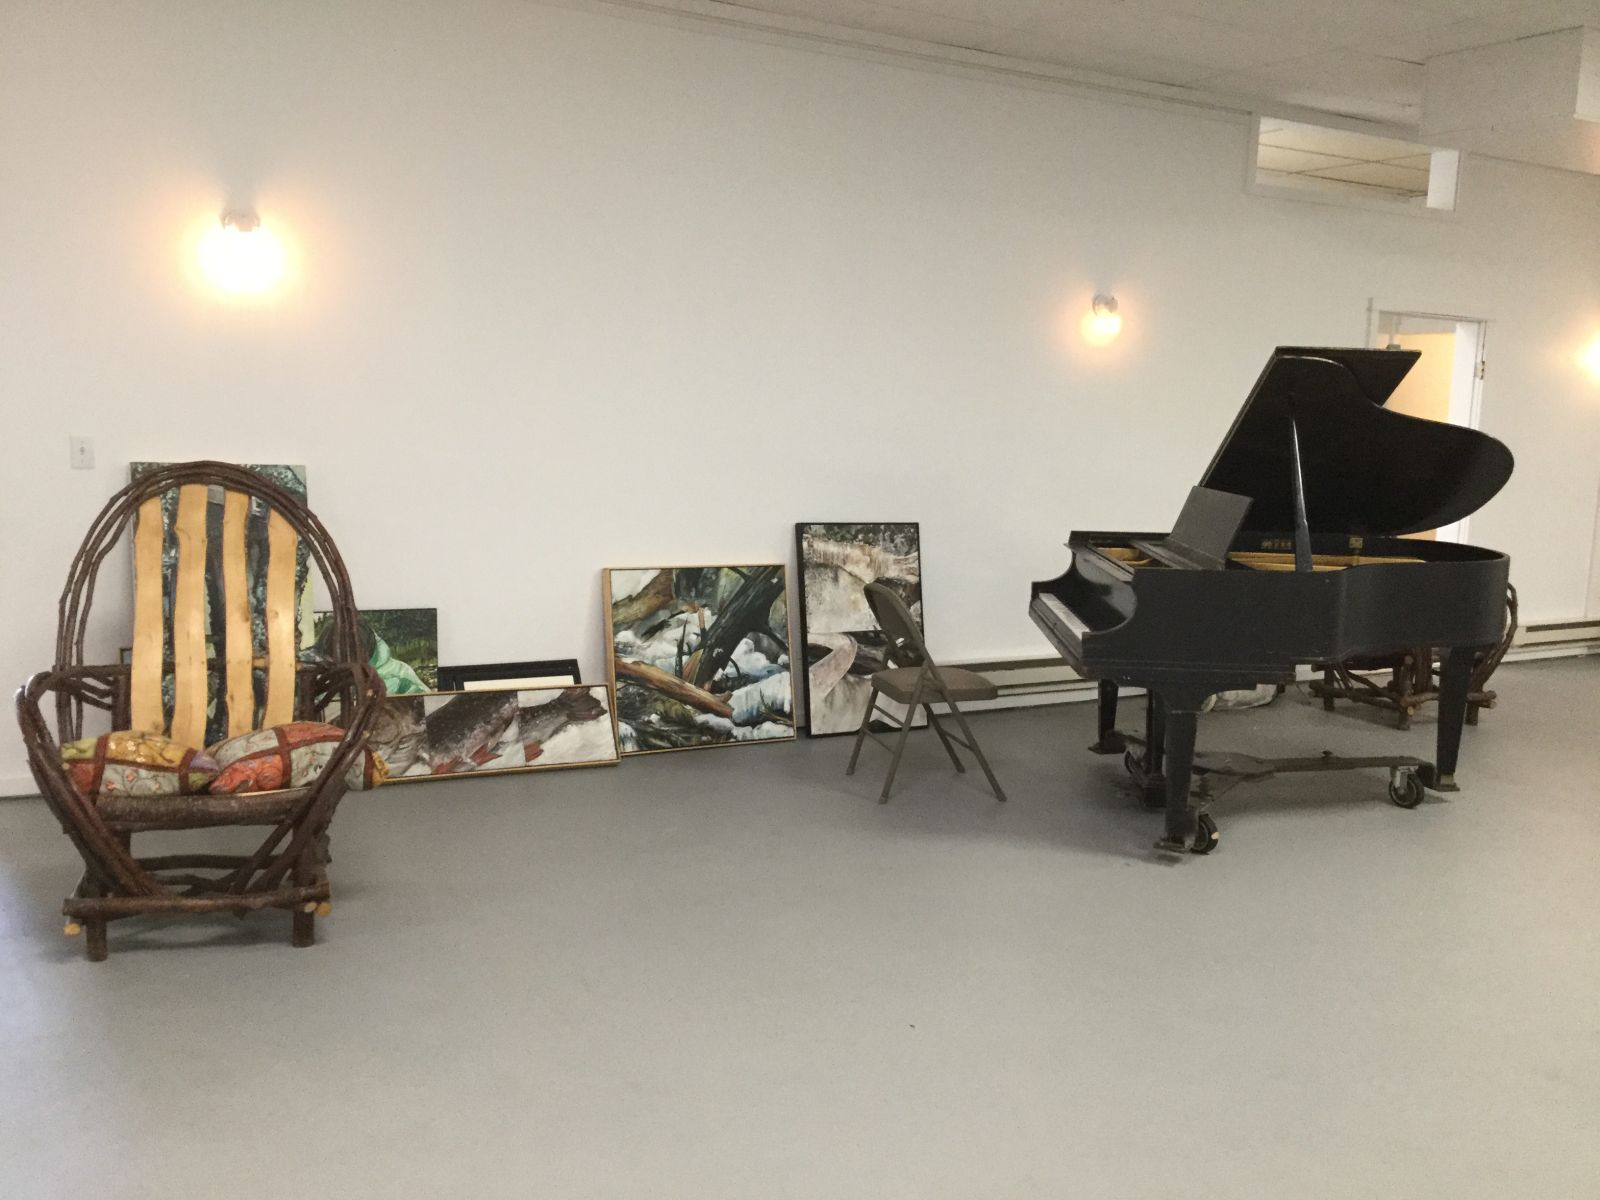 The piano was donated as part of the music program.